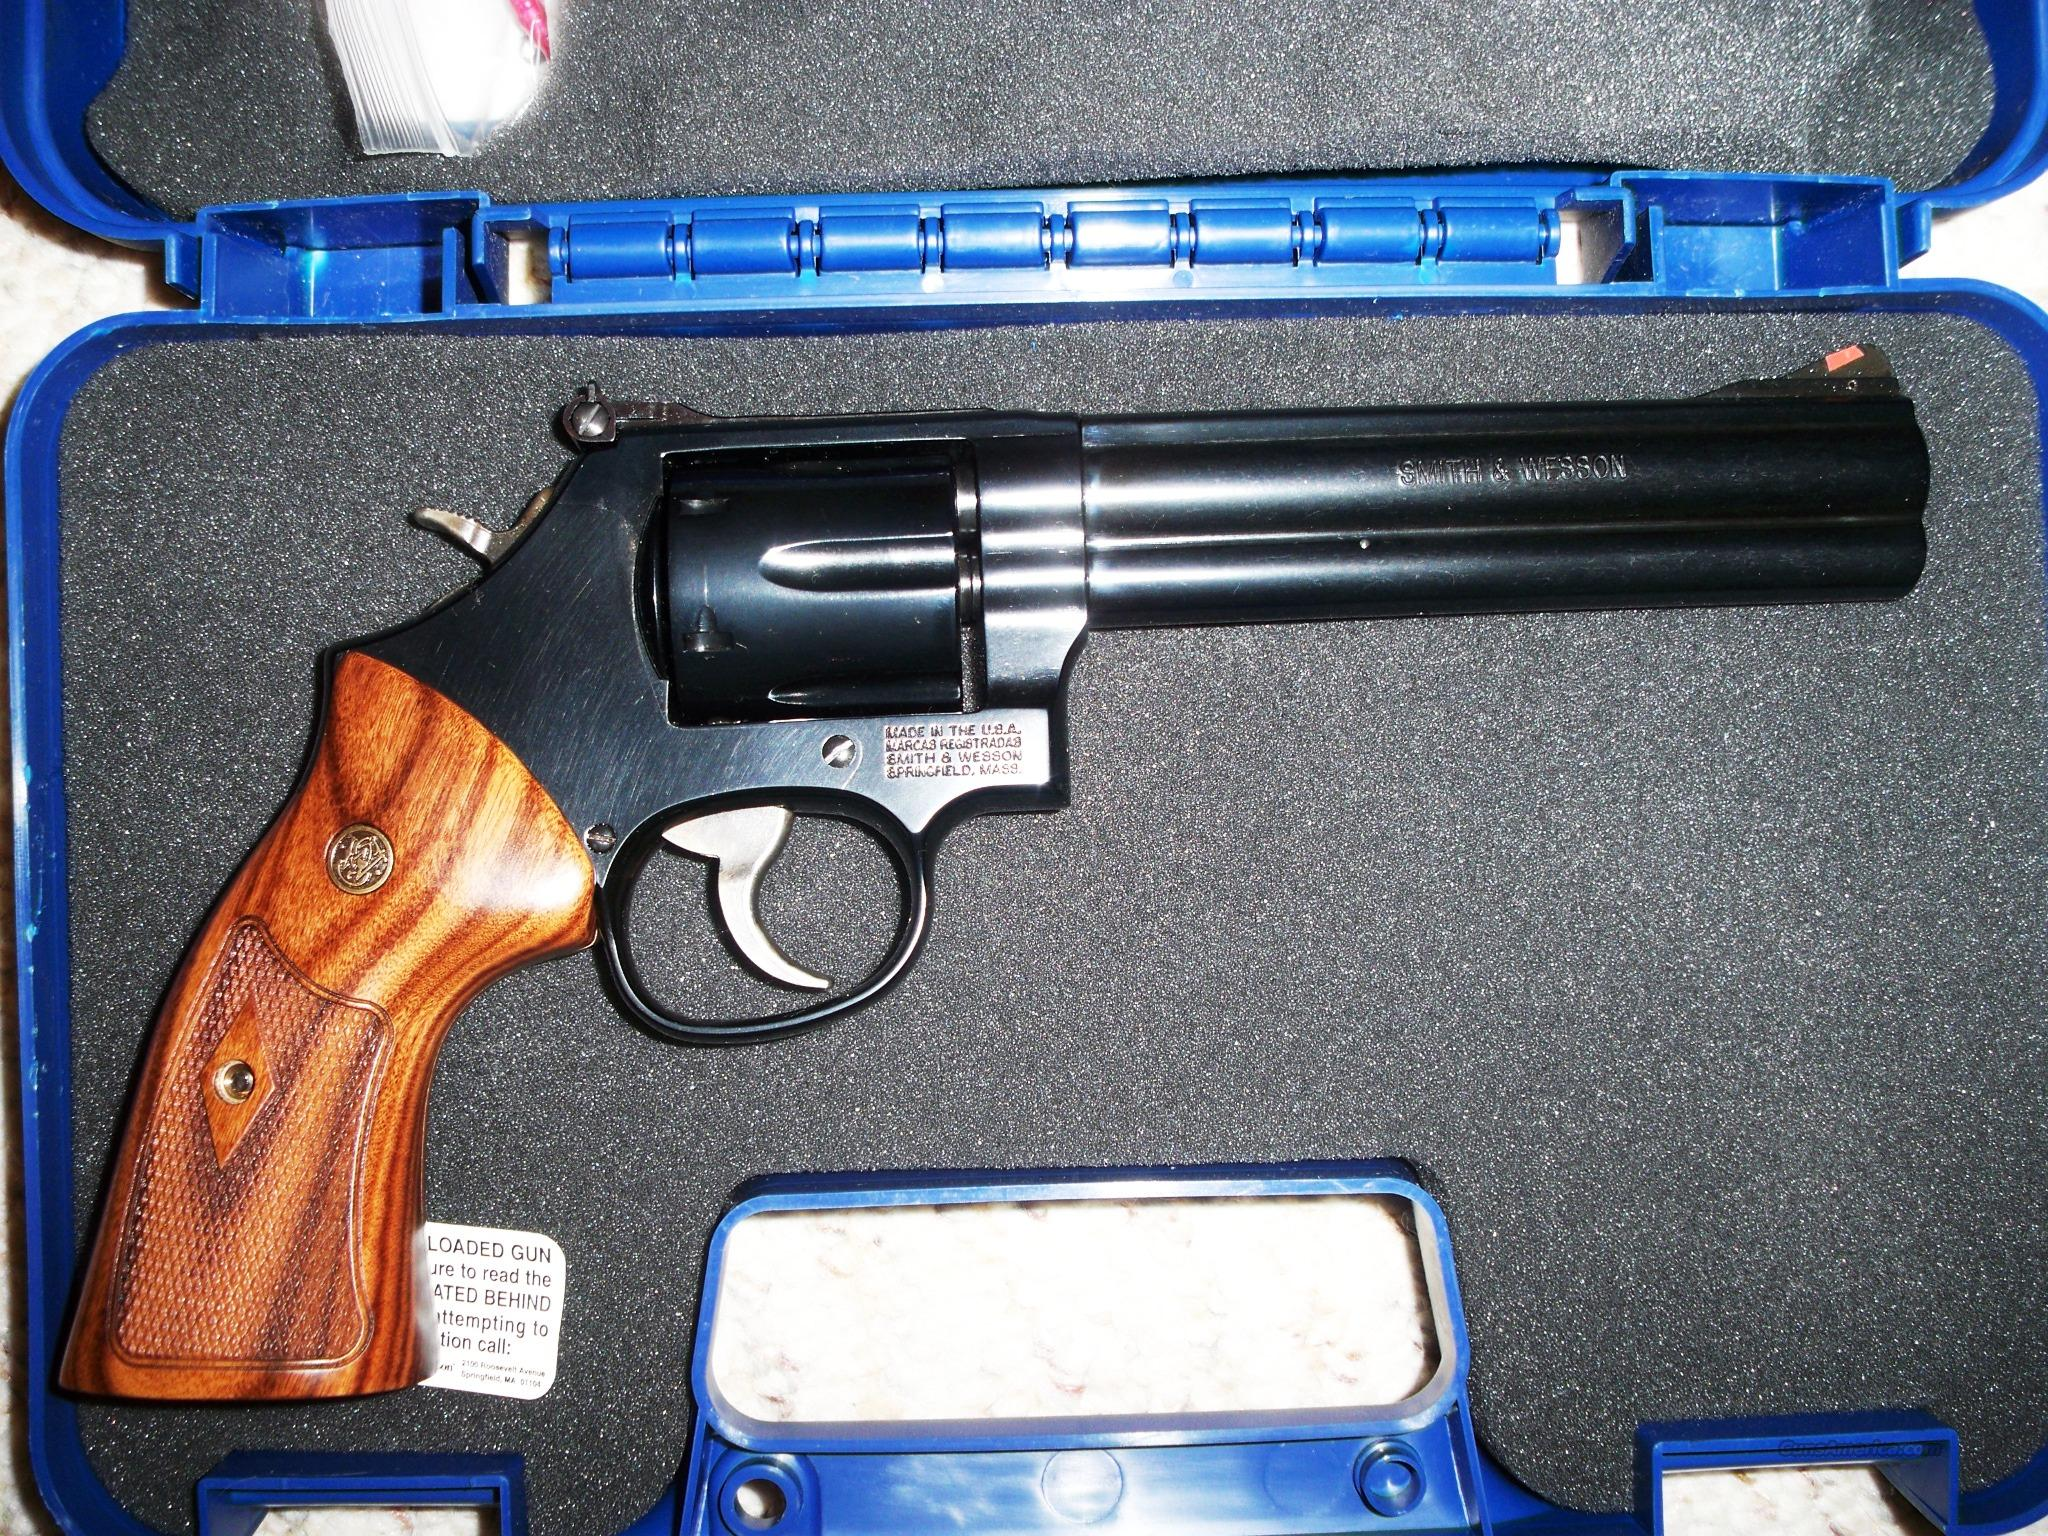 Smith & Wesson Model 586 6 Inch Barrel 357 Magnum  Guns > Pistols > Smith & Wesson Revolvers > Full Frame Revolver